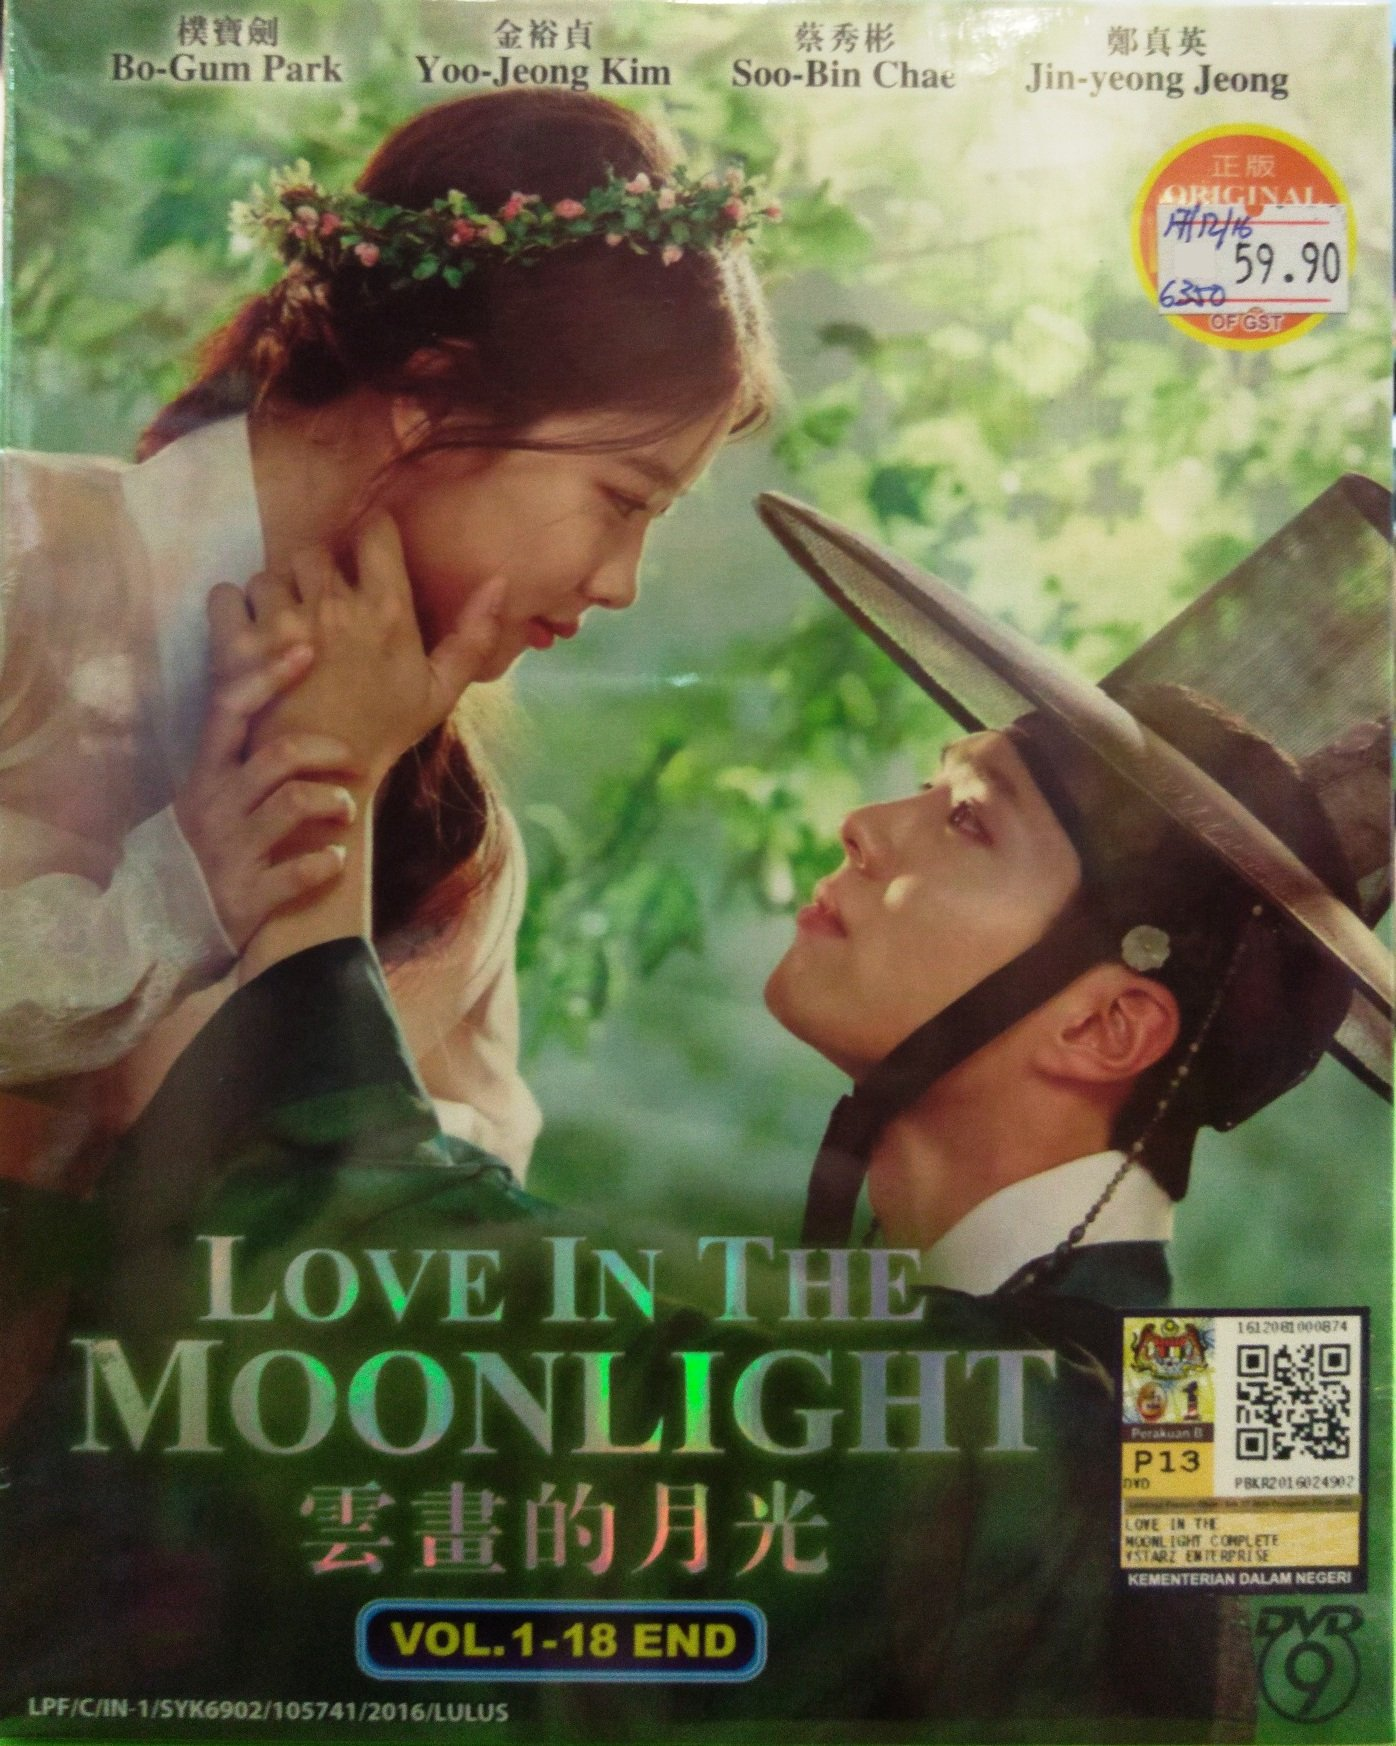 LOVE IN THE MOONLIGHT - COMPLETE KOREAN TV SERIES ( 1-18 EPISODES ) DVD BOX SETS